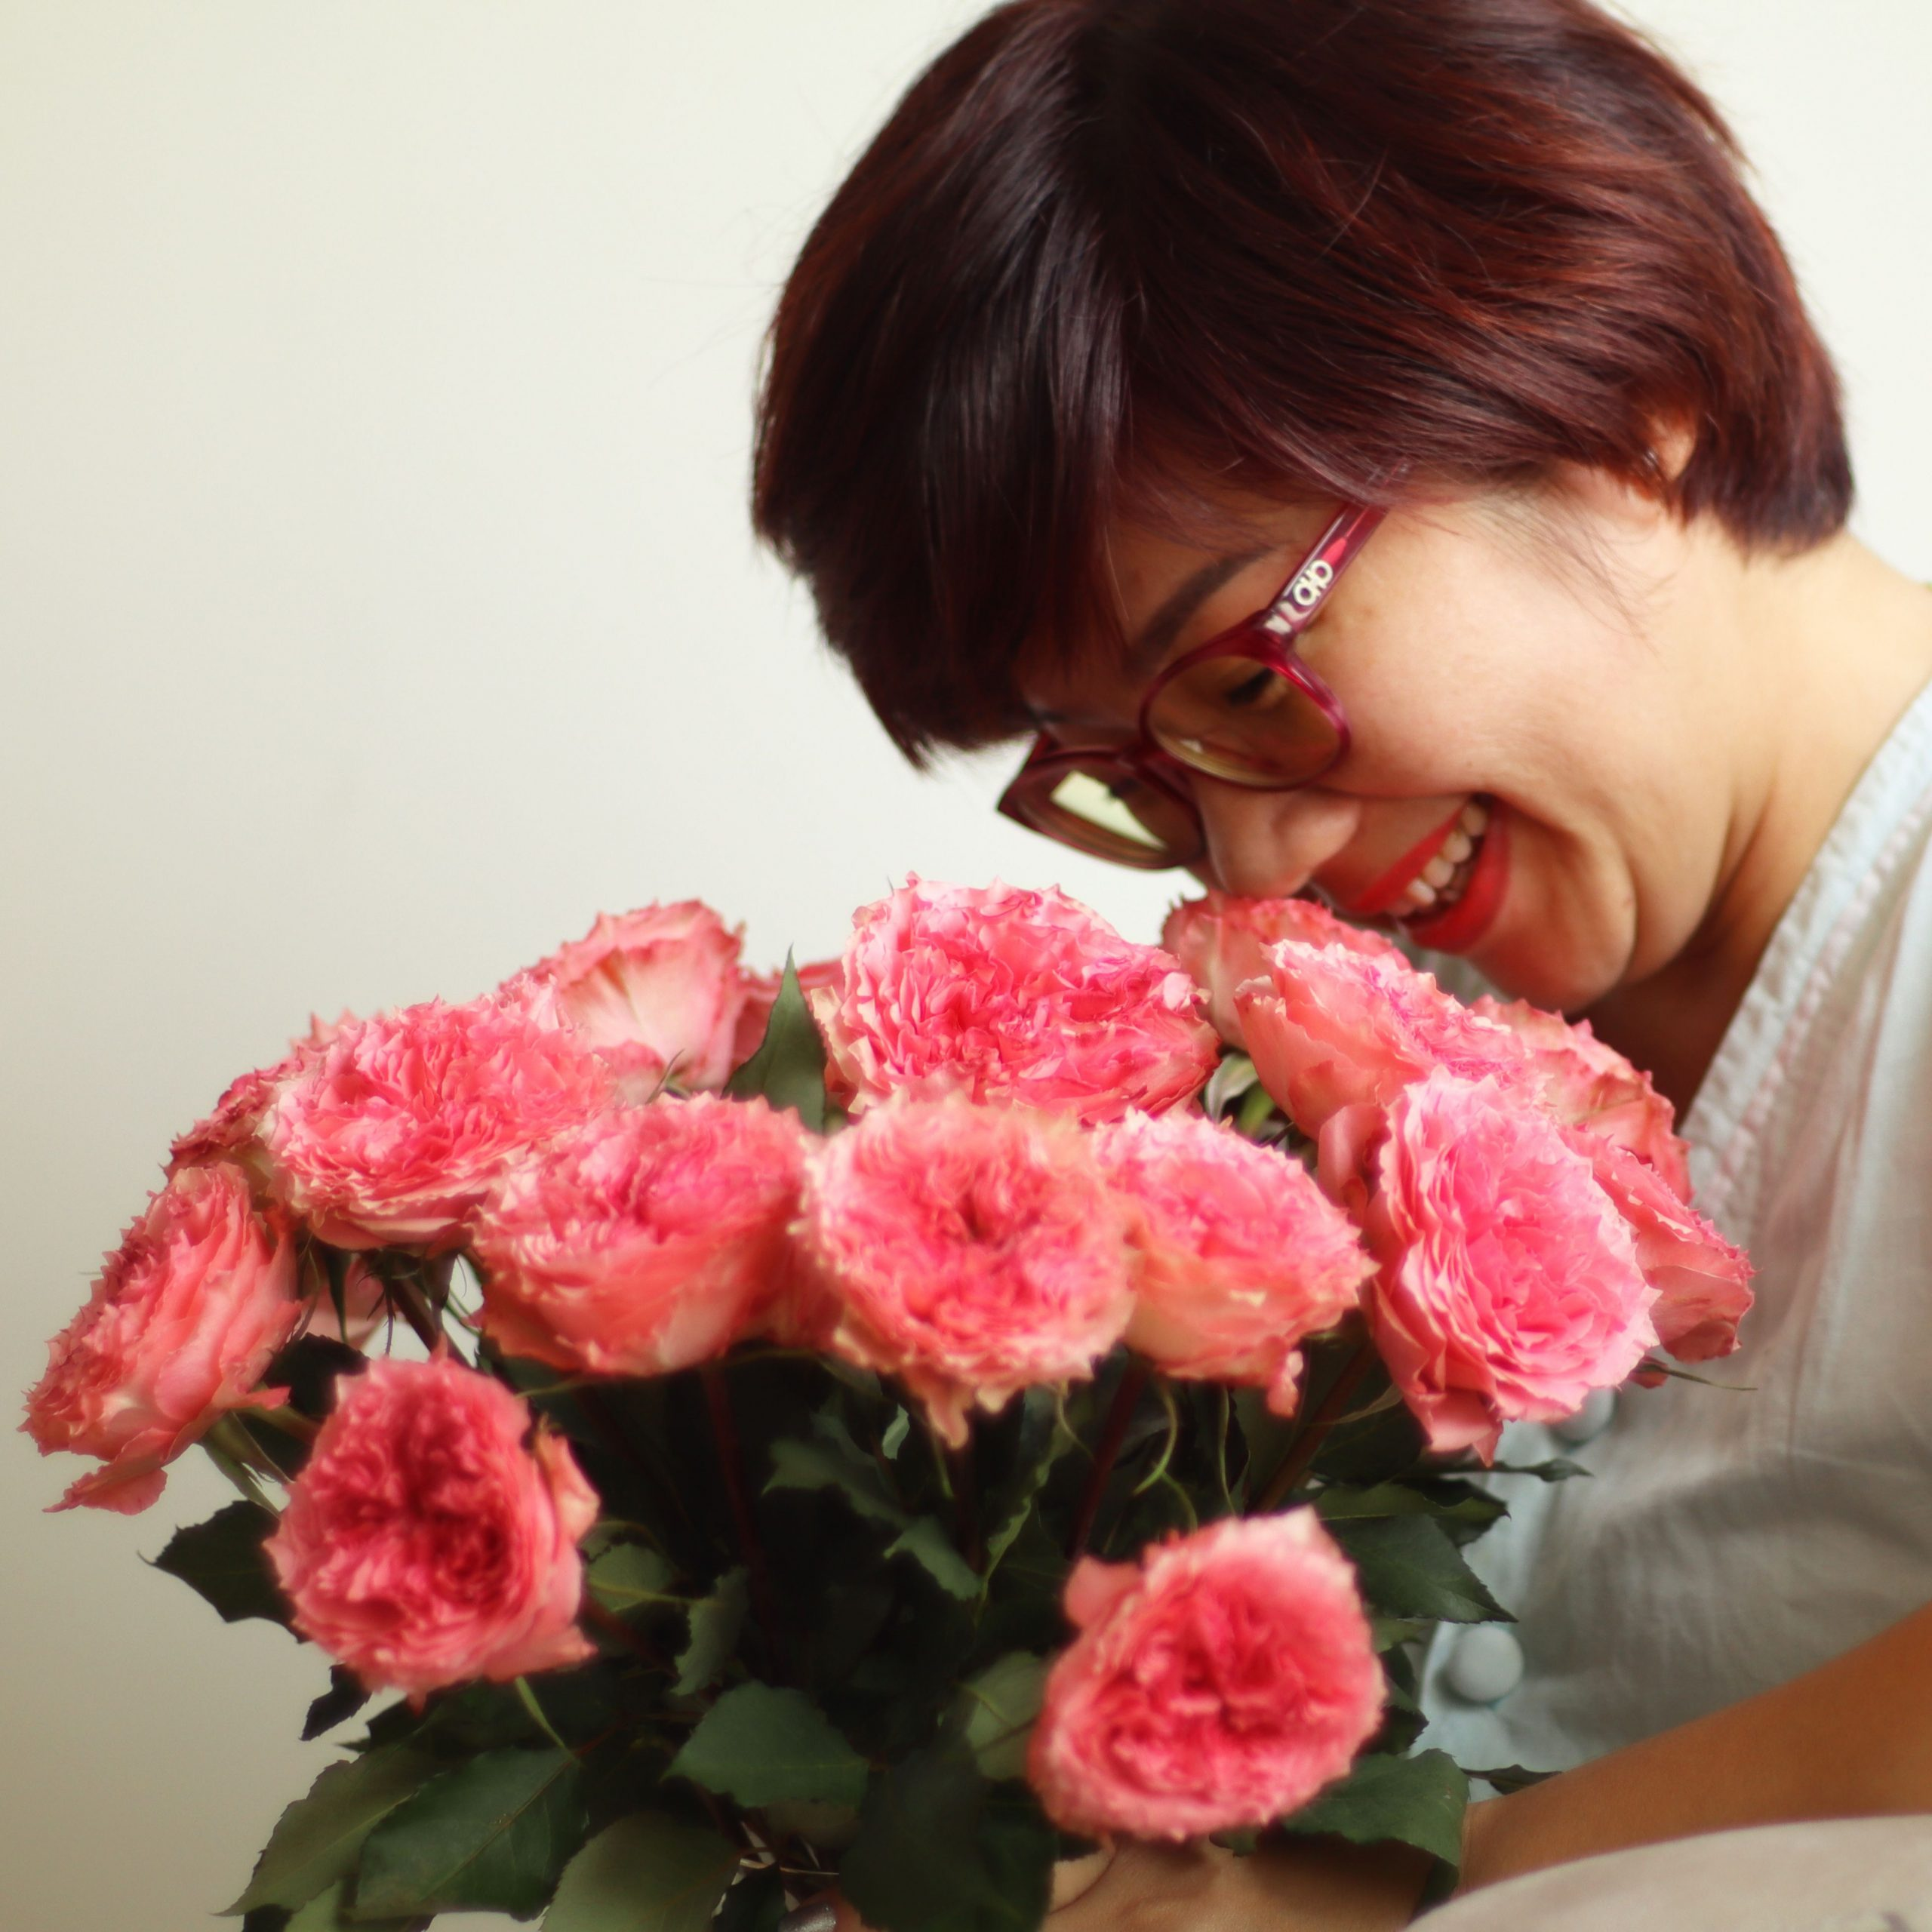 woman happily receiving flowers